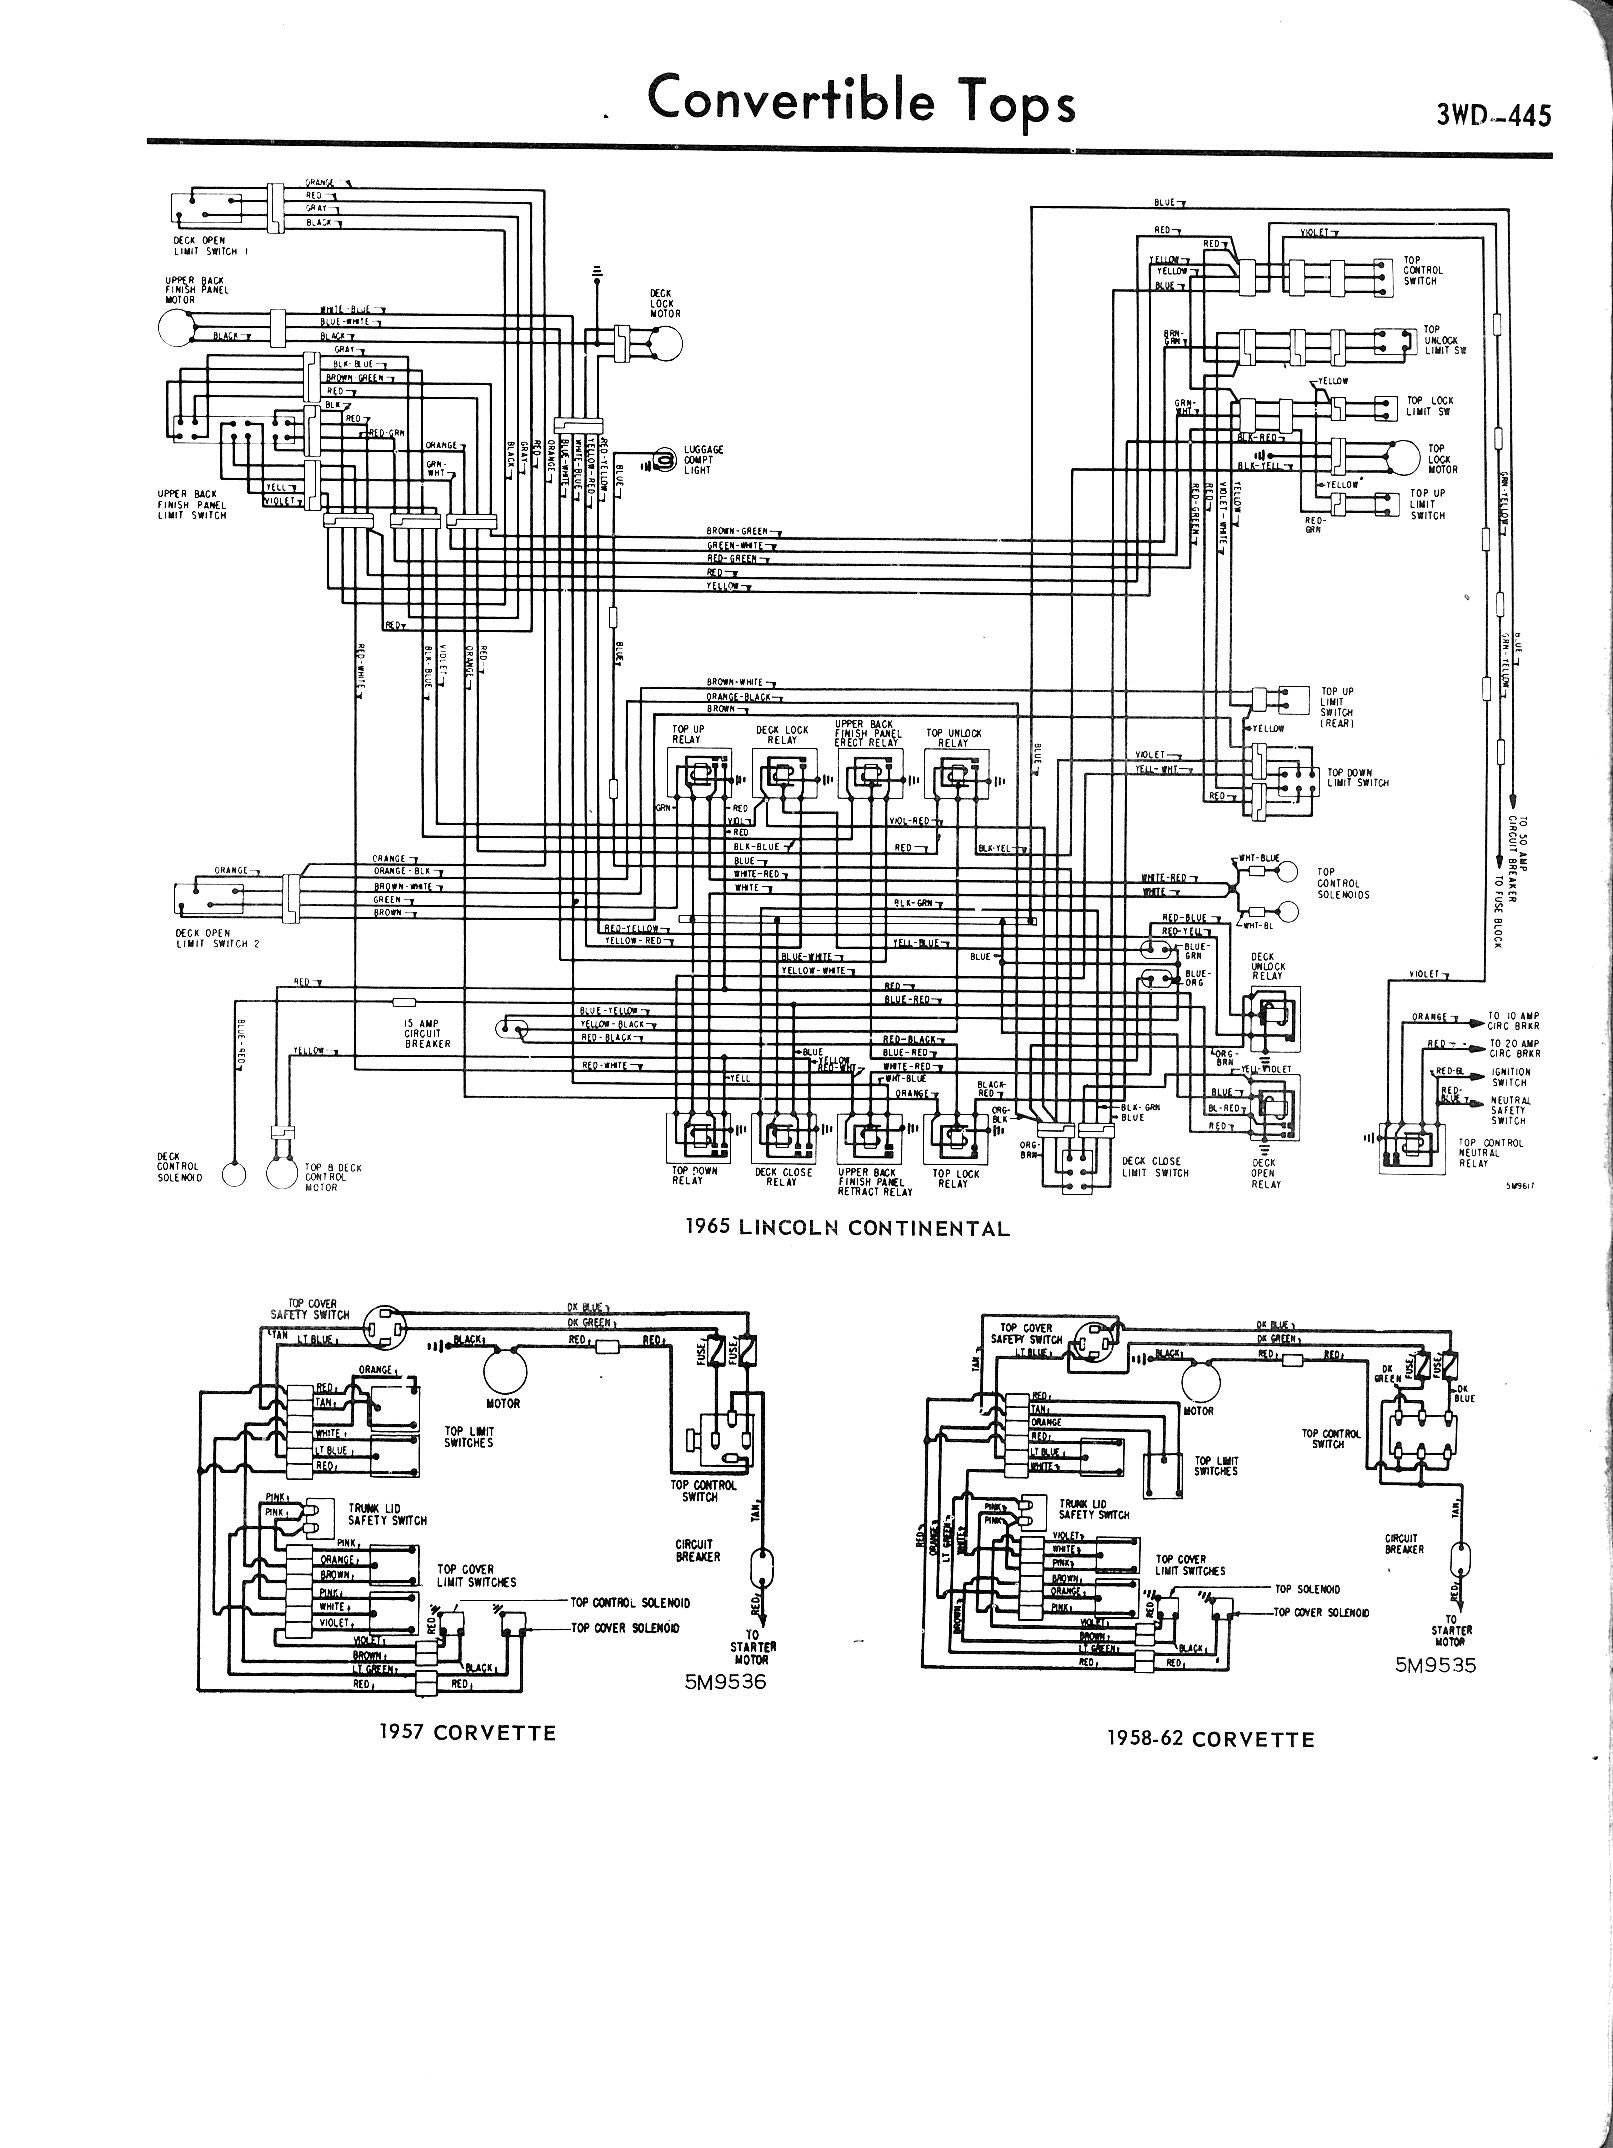 hight resolution of 1957 chevy wiring harness diagram wiring diagram for you 1957 chevy wagon wiring harness wiring diagram